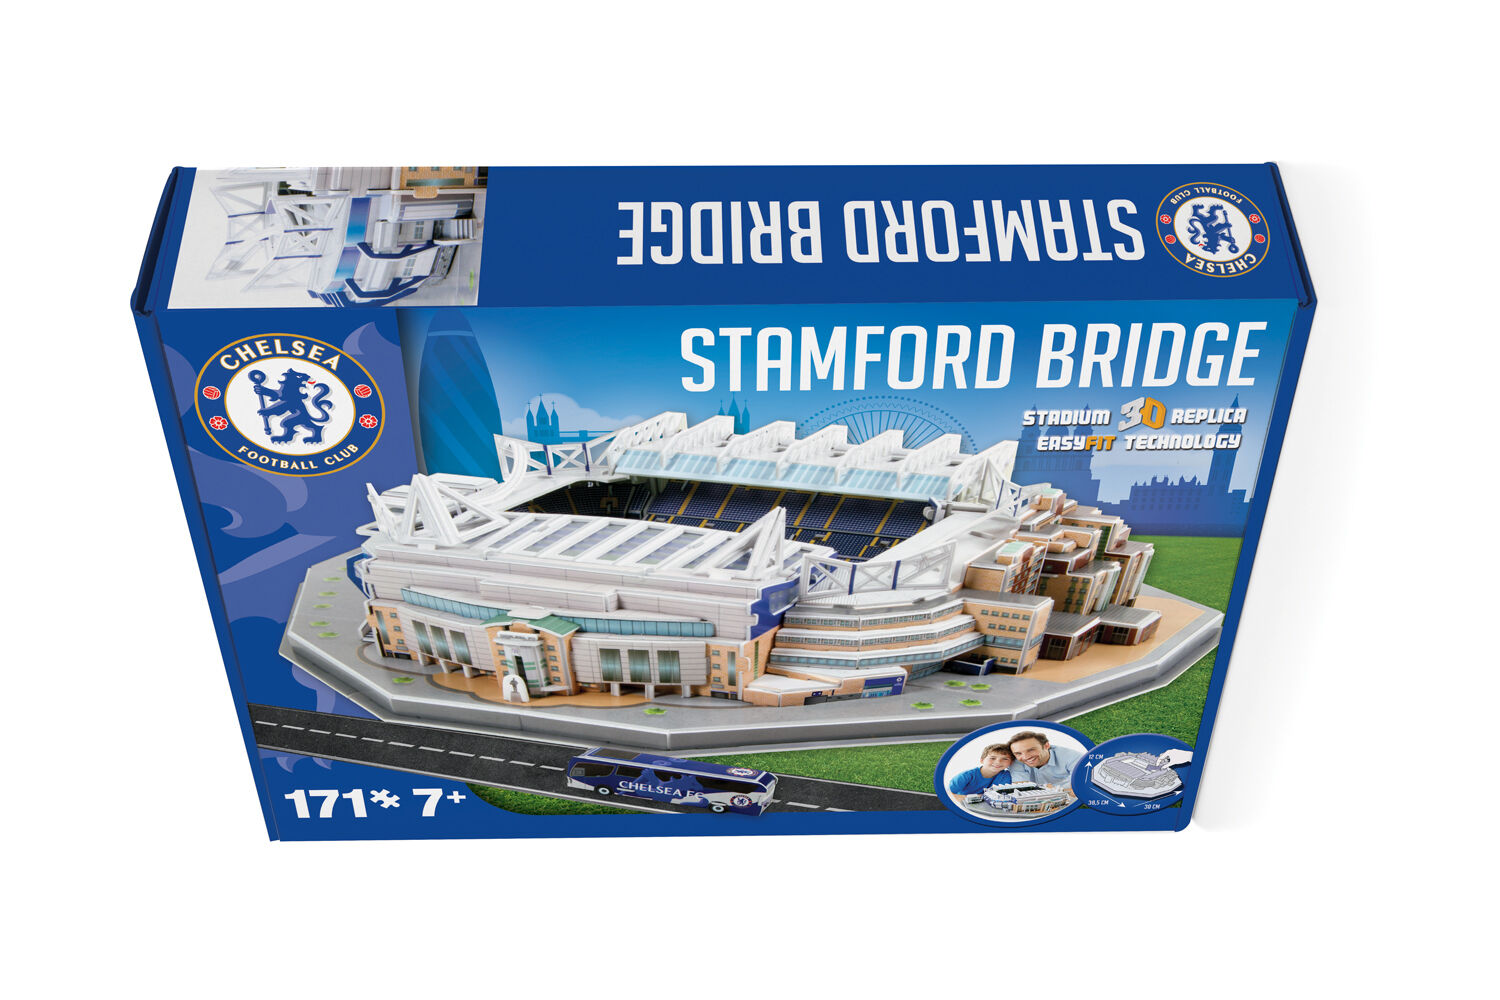 Stamford Bridge  Build your Own Chelsea Stadium 3D Model Jigsaw Puzzle. New